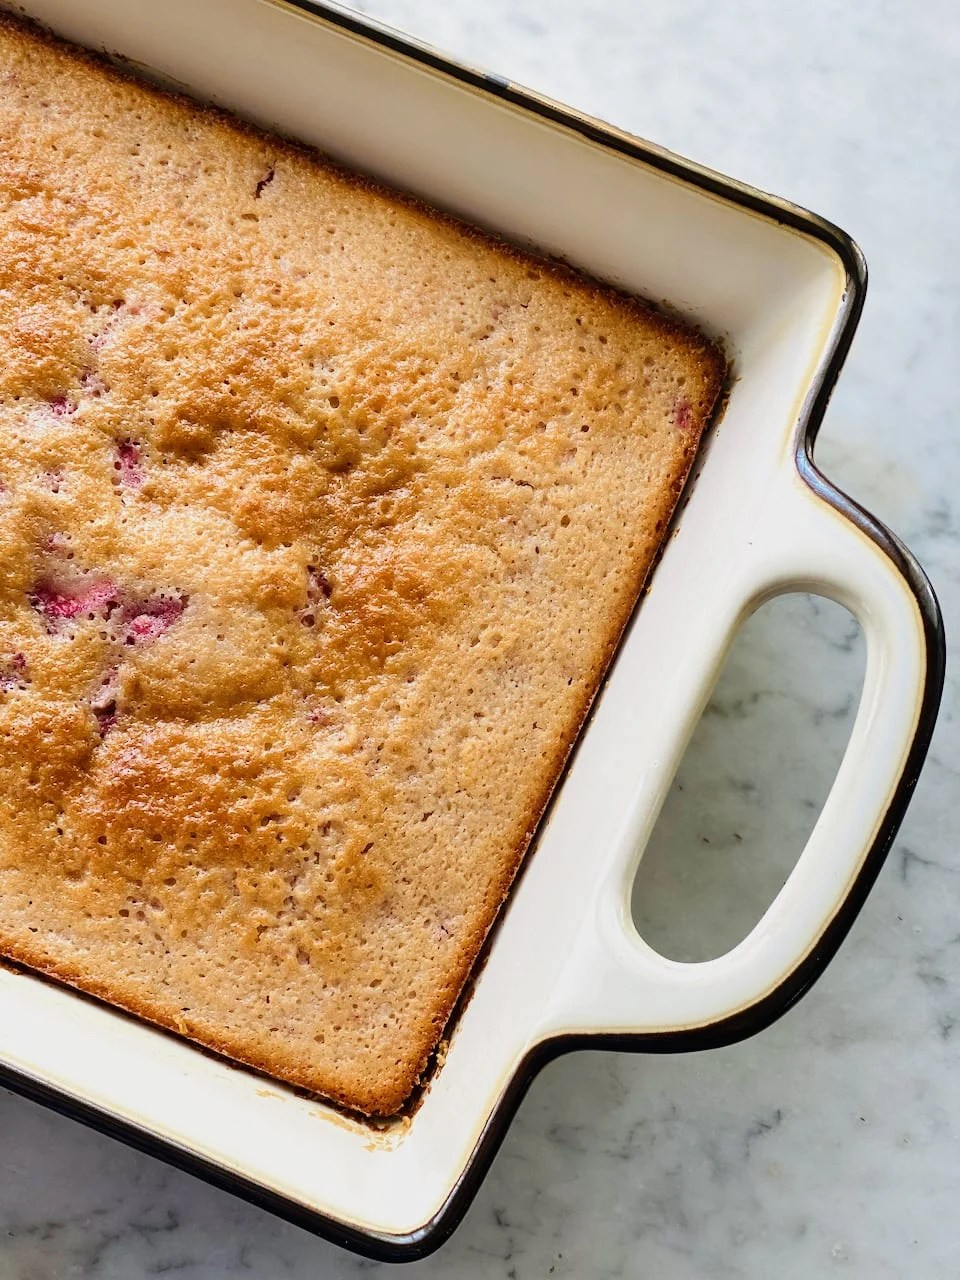 strawberry cake baked in a 13 x 9 inch pan